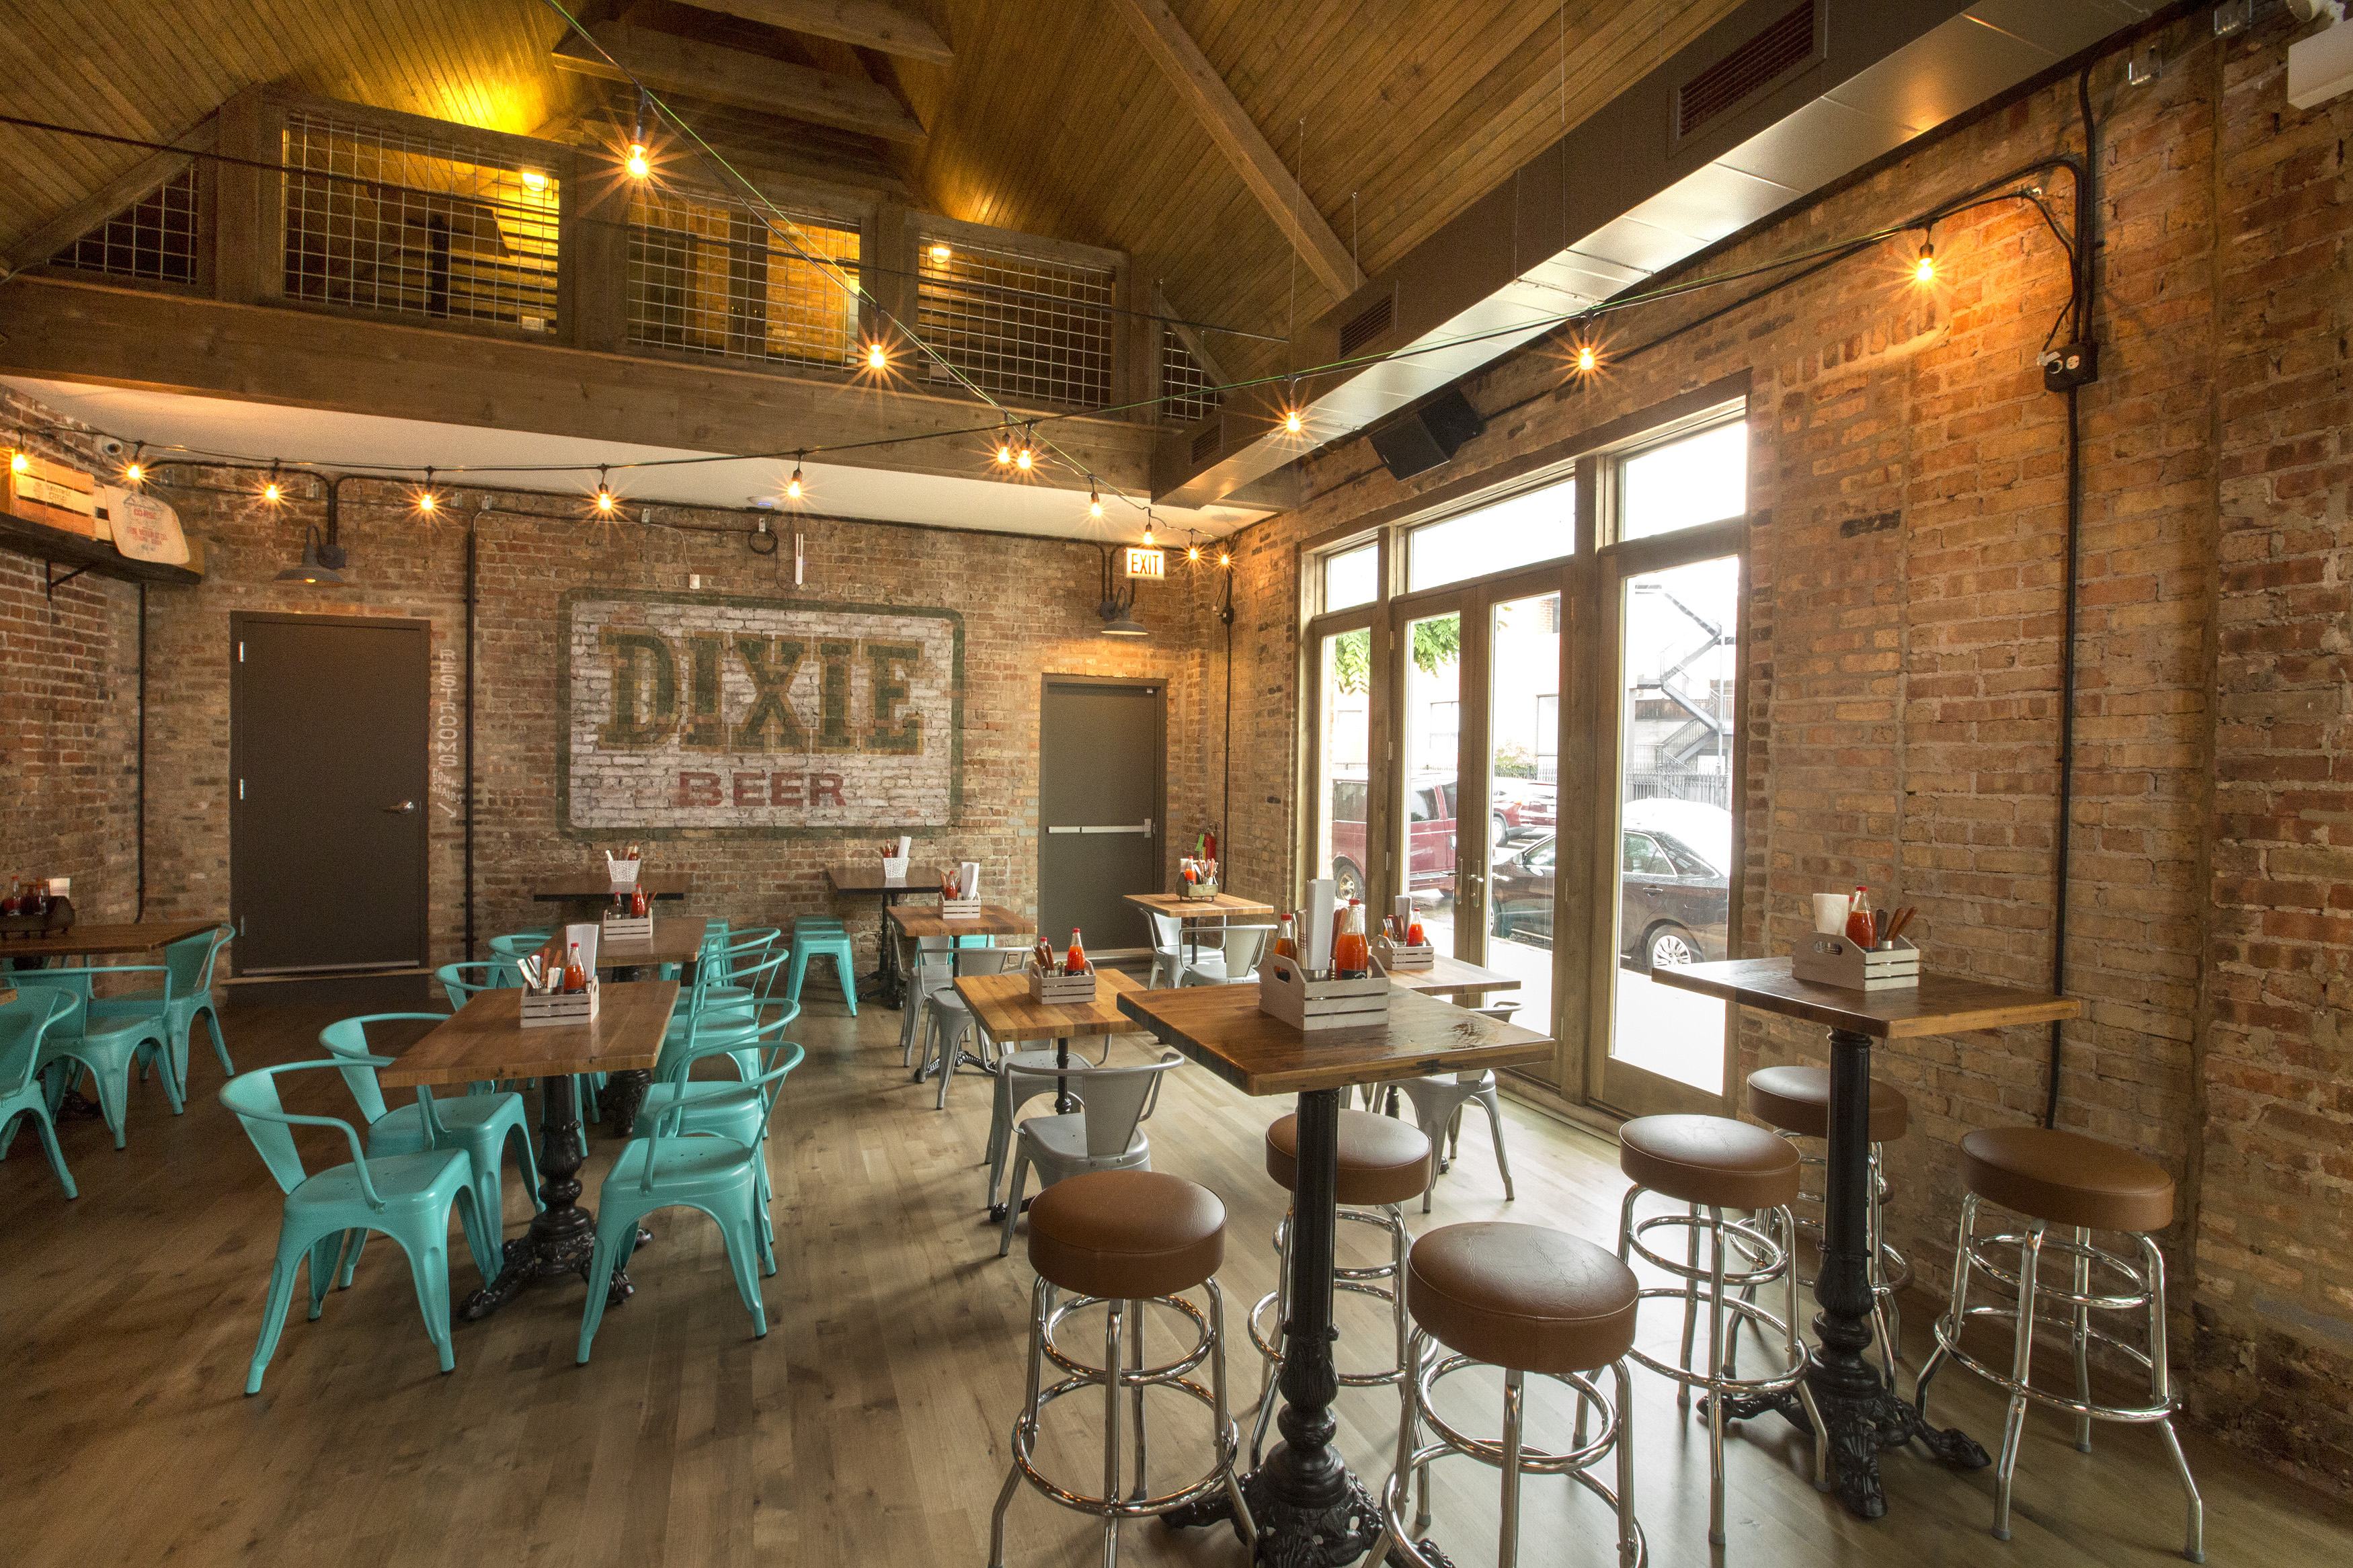 A restaurant with exposed brick walls with vintage seating and stools.